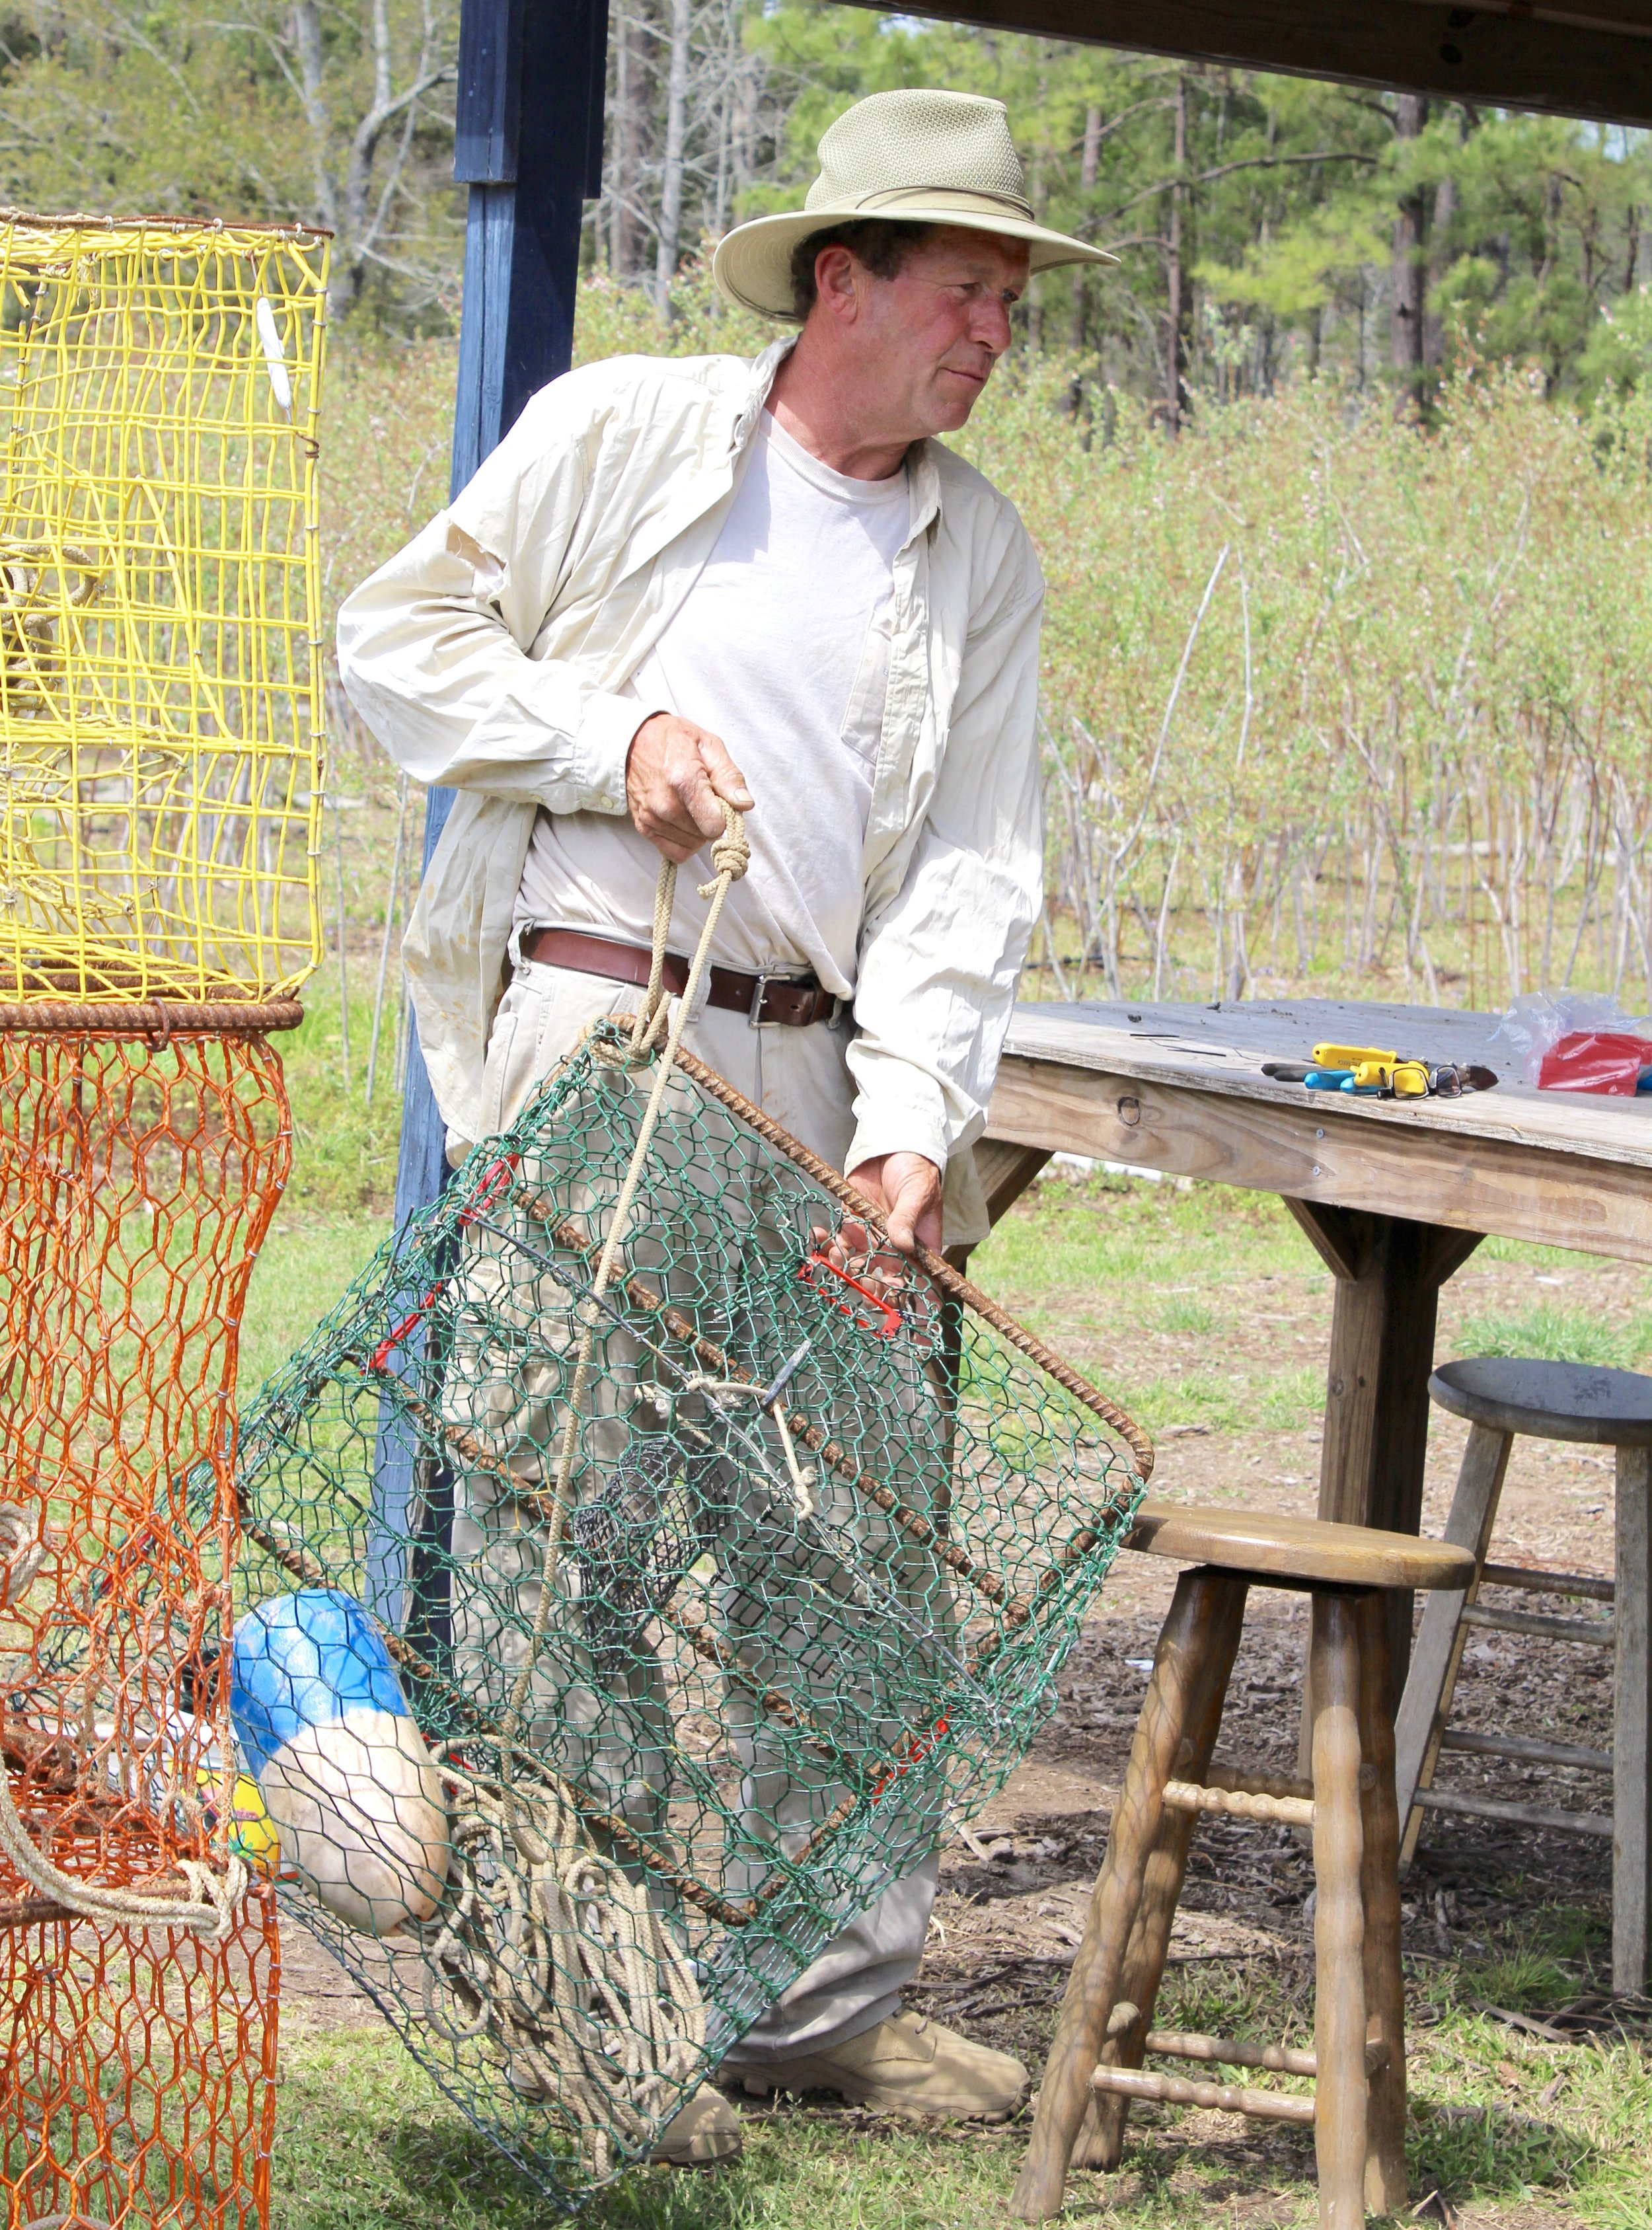 Crabber Robert Sollot finishes installing four bycatch reduction devices (BRDs)on one of his 120 crab traps. (Photo: E. Weeks/SCDNR)